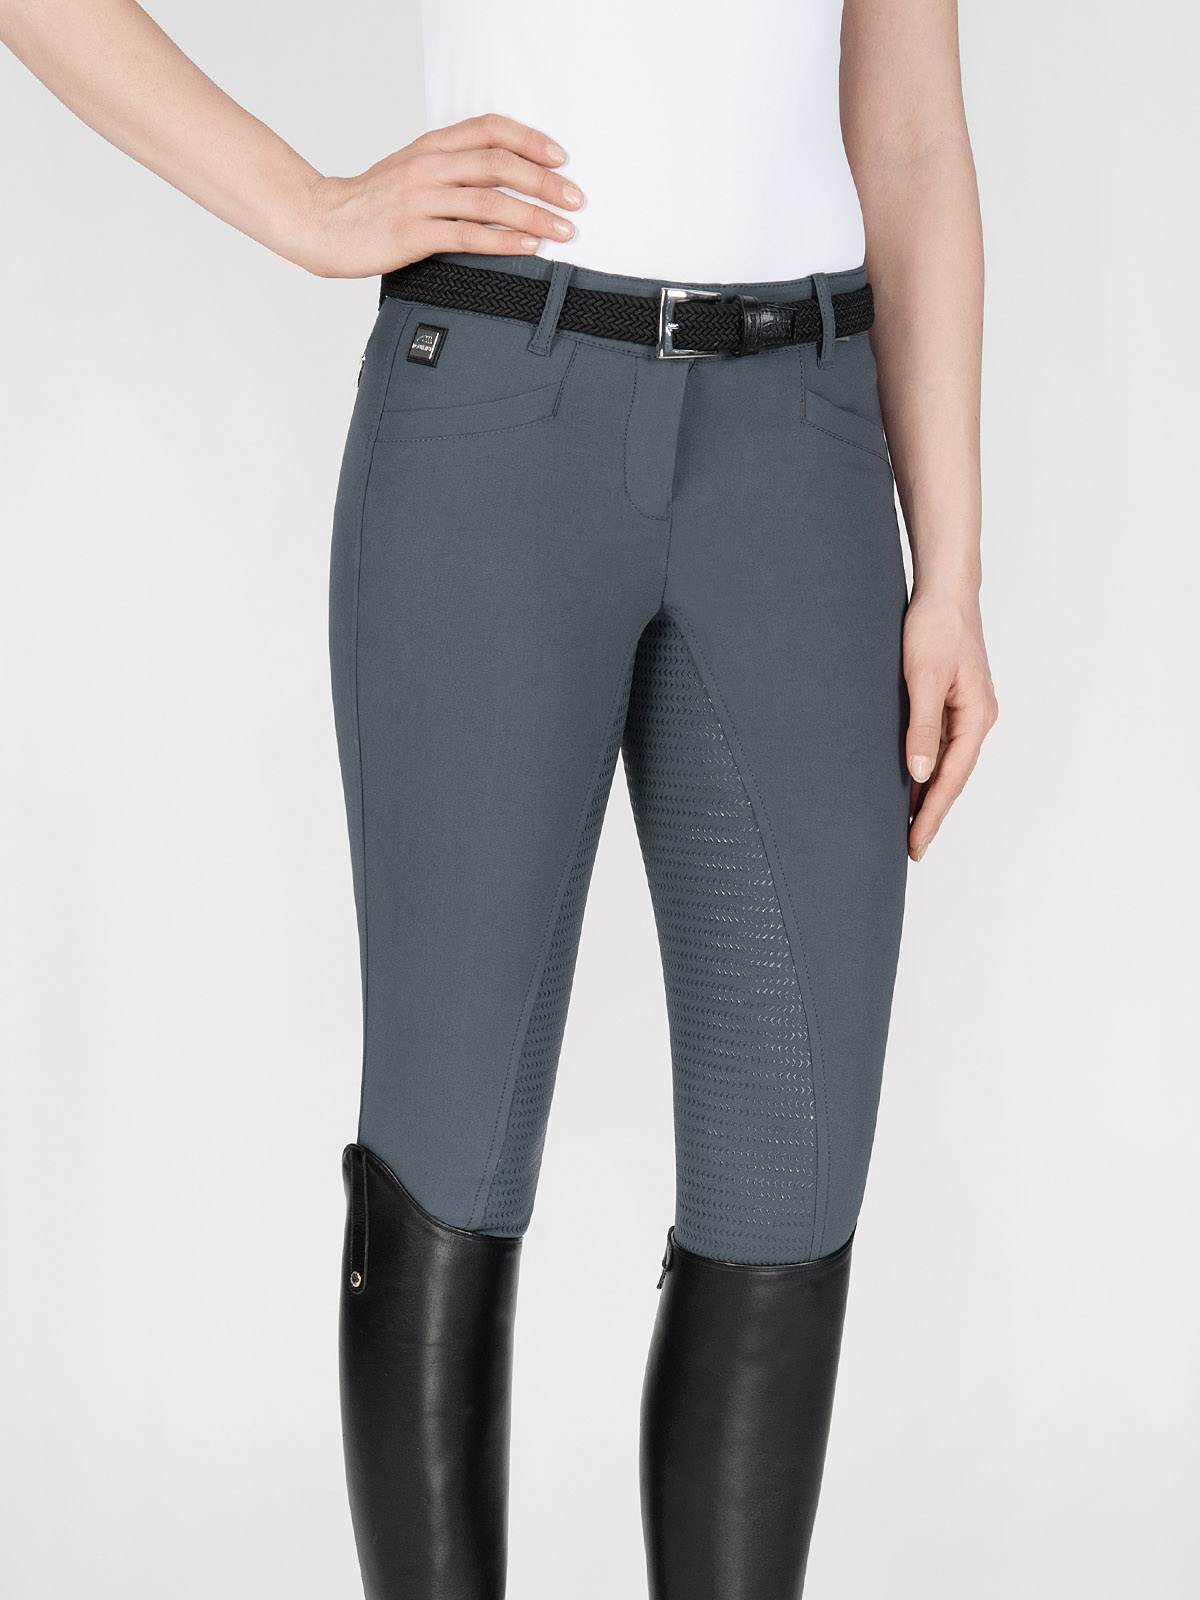 CEDAR women's riding breeches with full seat Grip in Grey